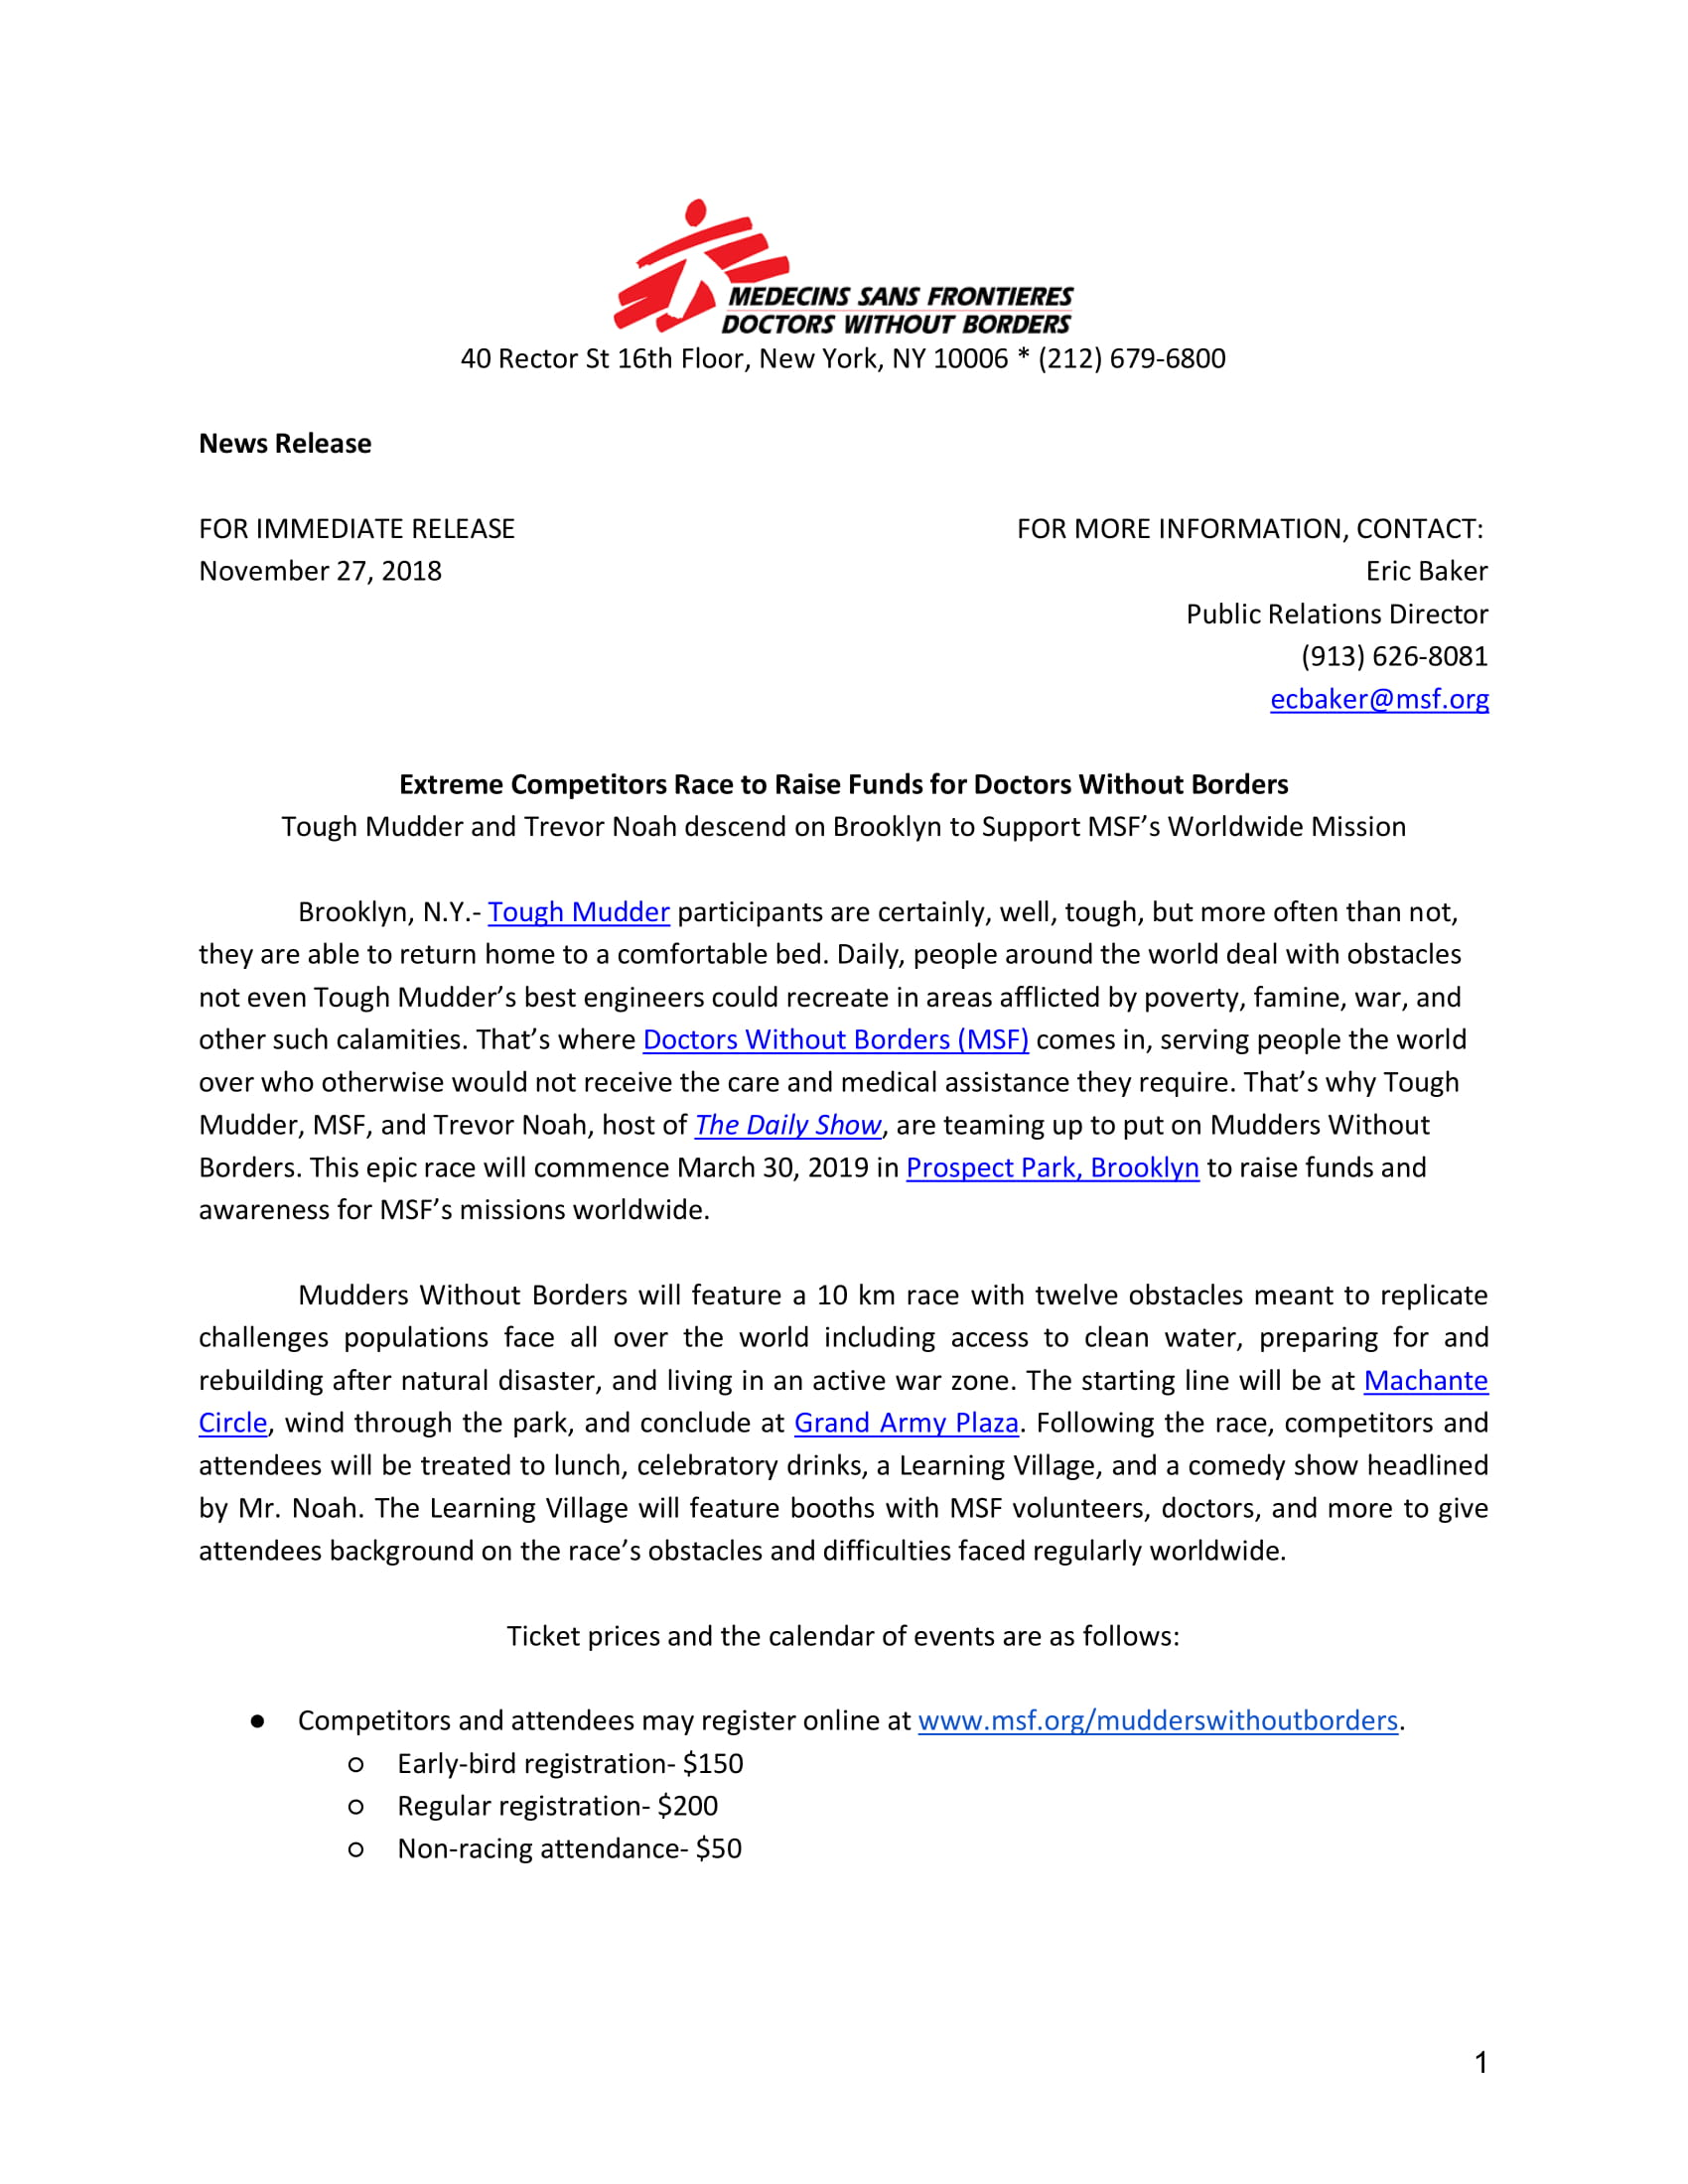 Mudders Without Border Press Release Page 1